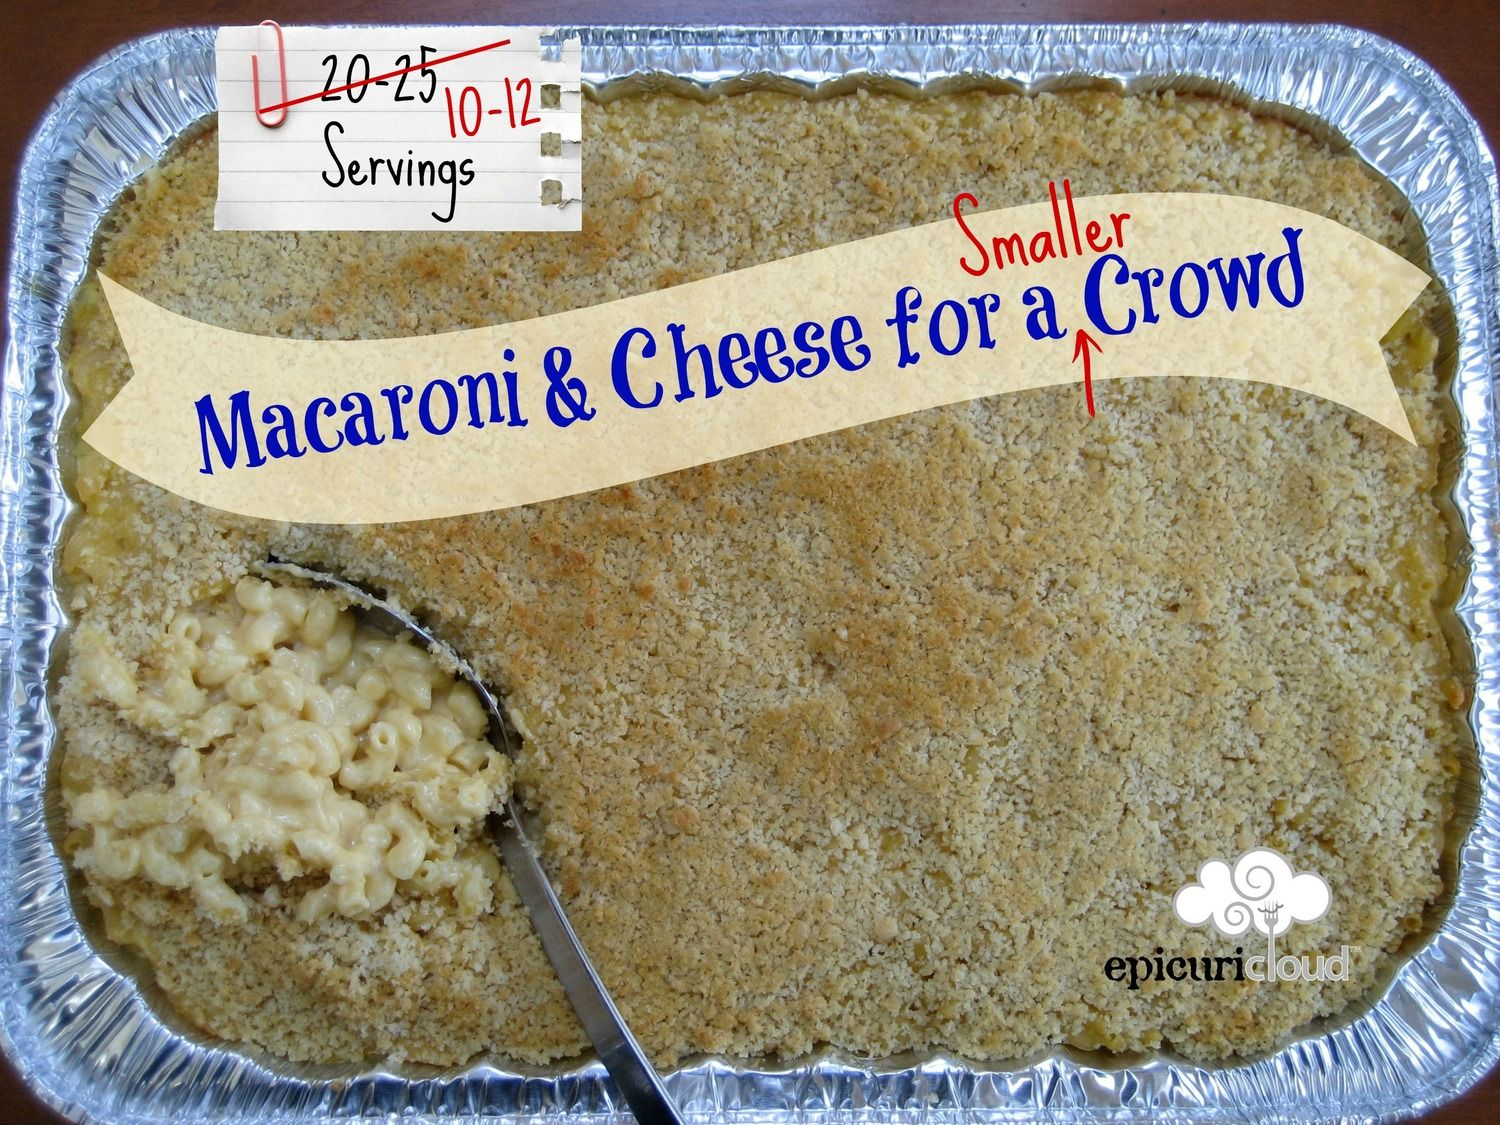 Macaroni and Cheese for a Smaller Crowd Recipe - epicuricloud